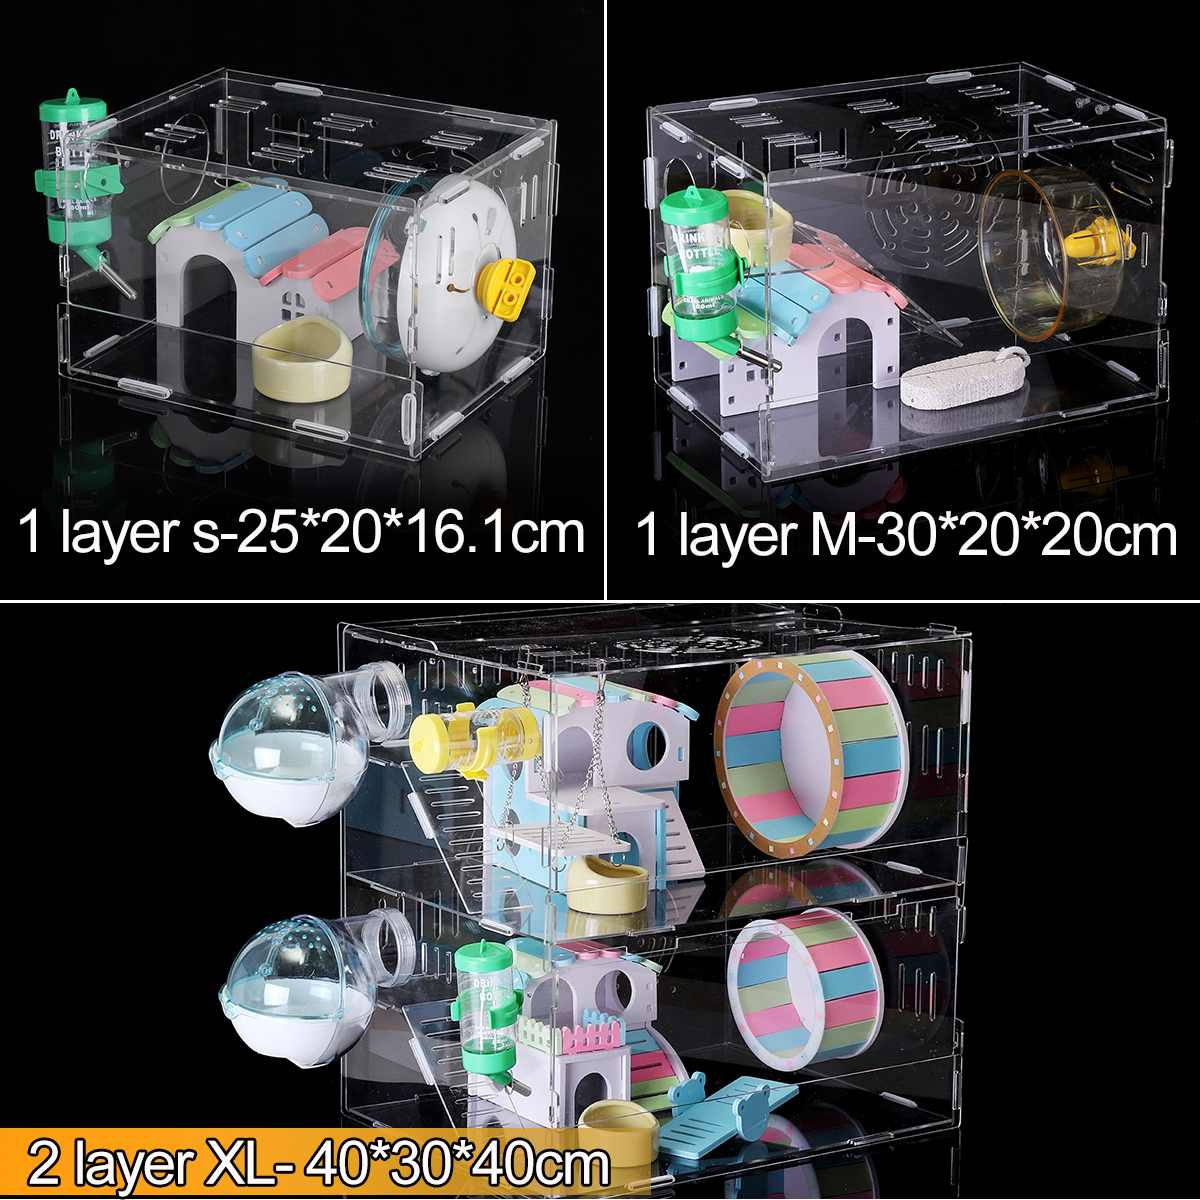 S/M/XL Single/ Double Layer Hamster Cage Funny Guinea Pig Cage Small Pets Mice House Chinchilla Hedgehog Hamster Acrylic House